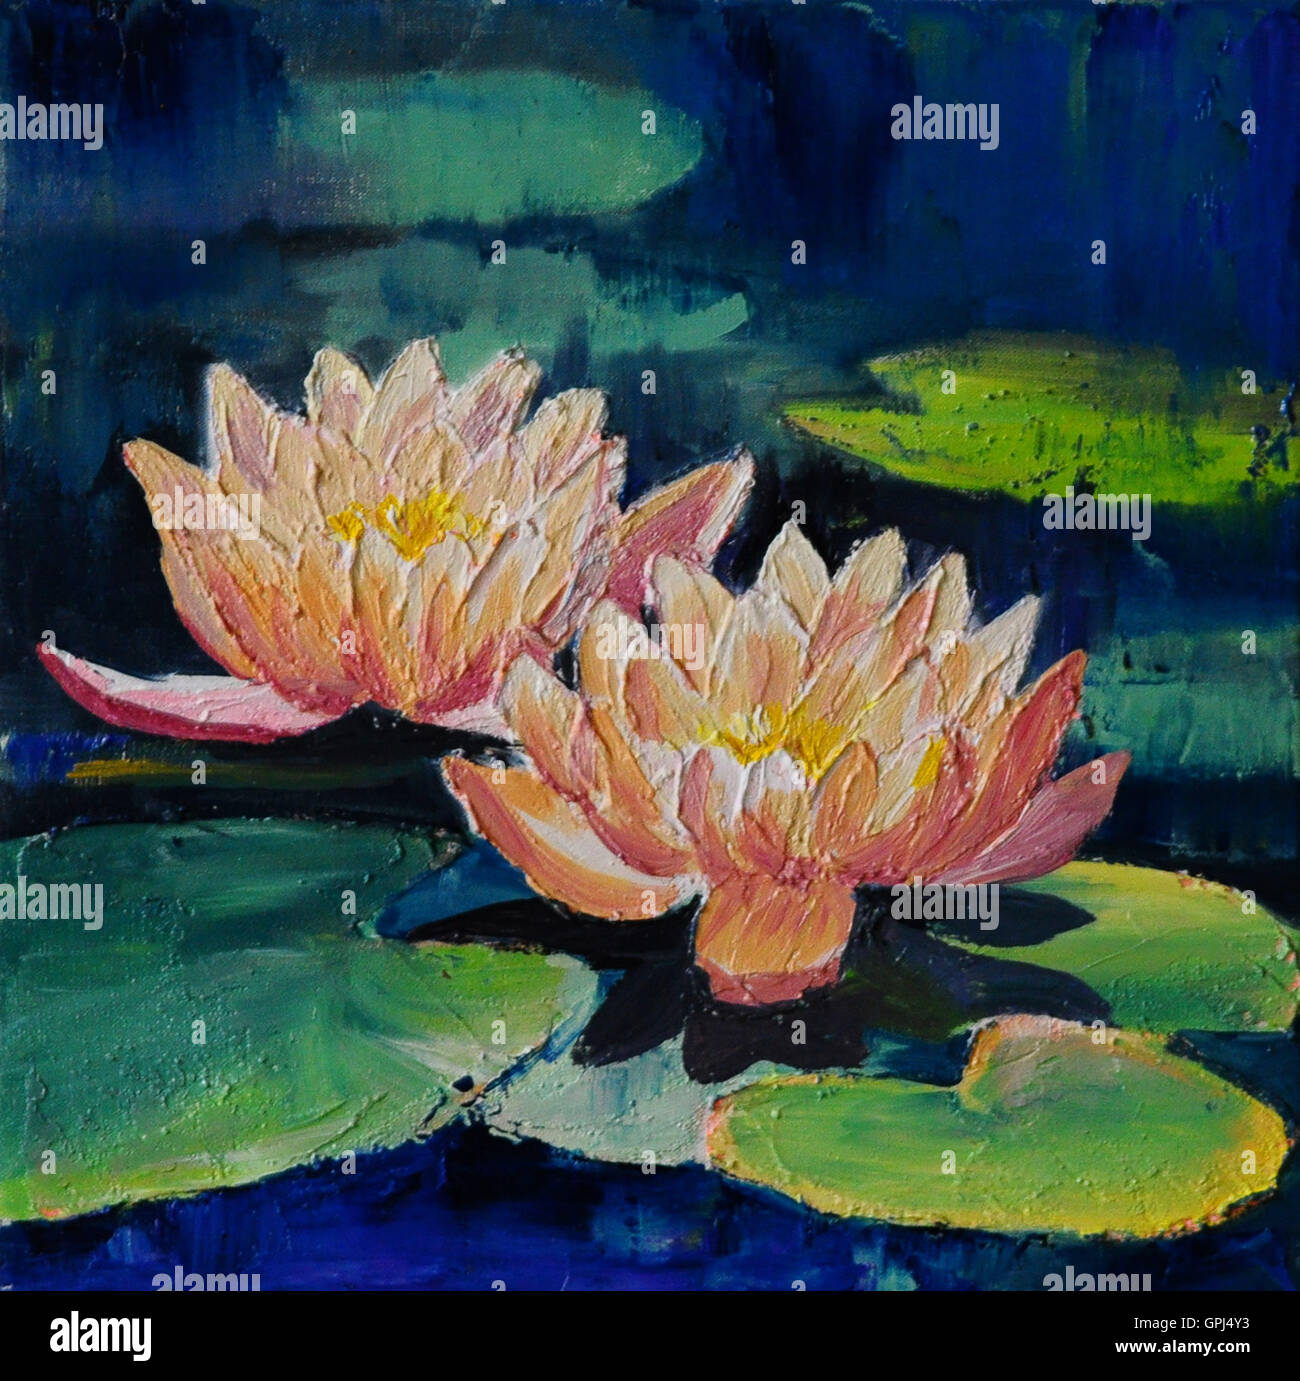 Oil Painting Lotus Flower Abstract Stock Photos Oil Painting Lotus